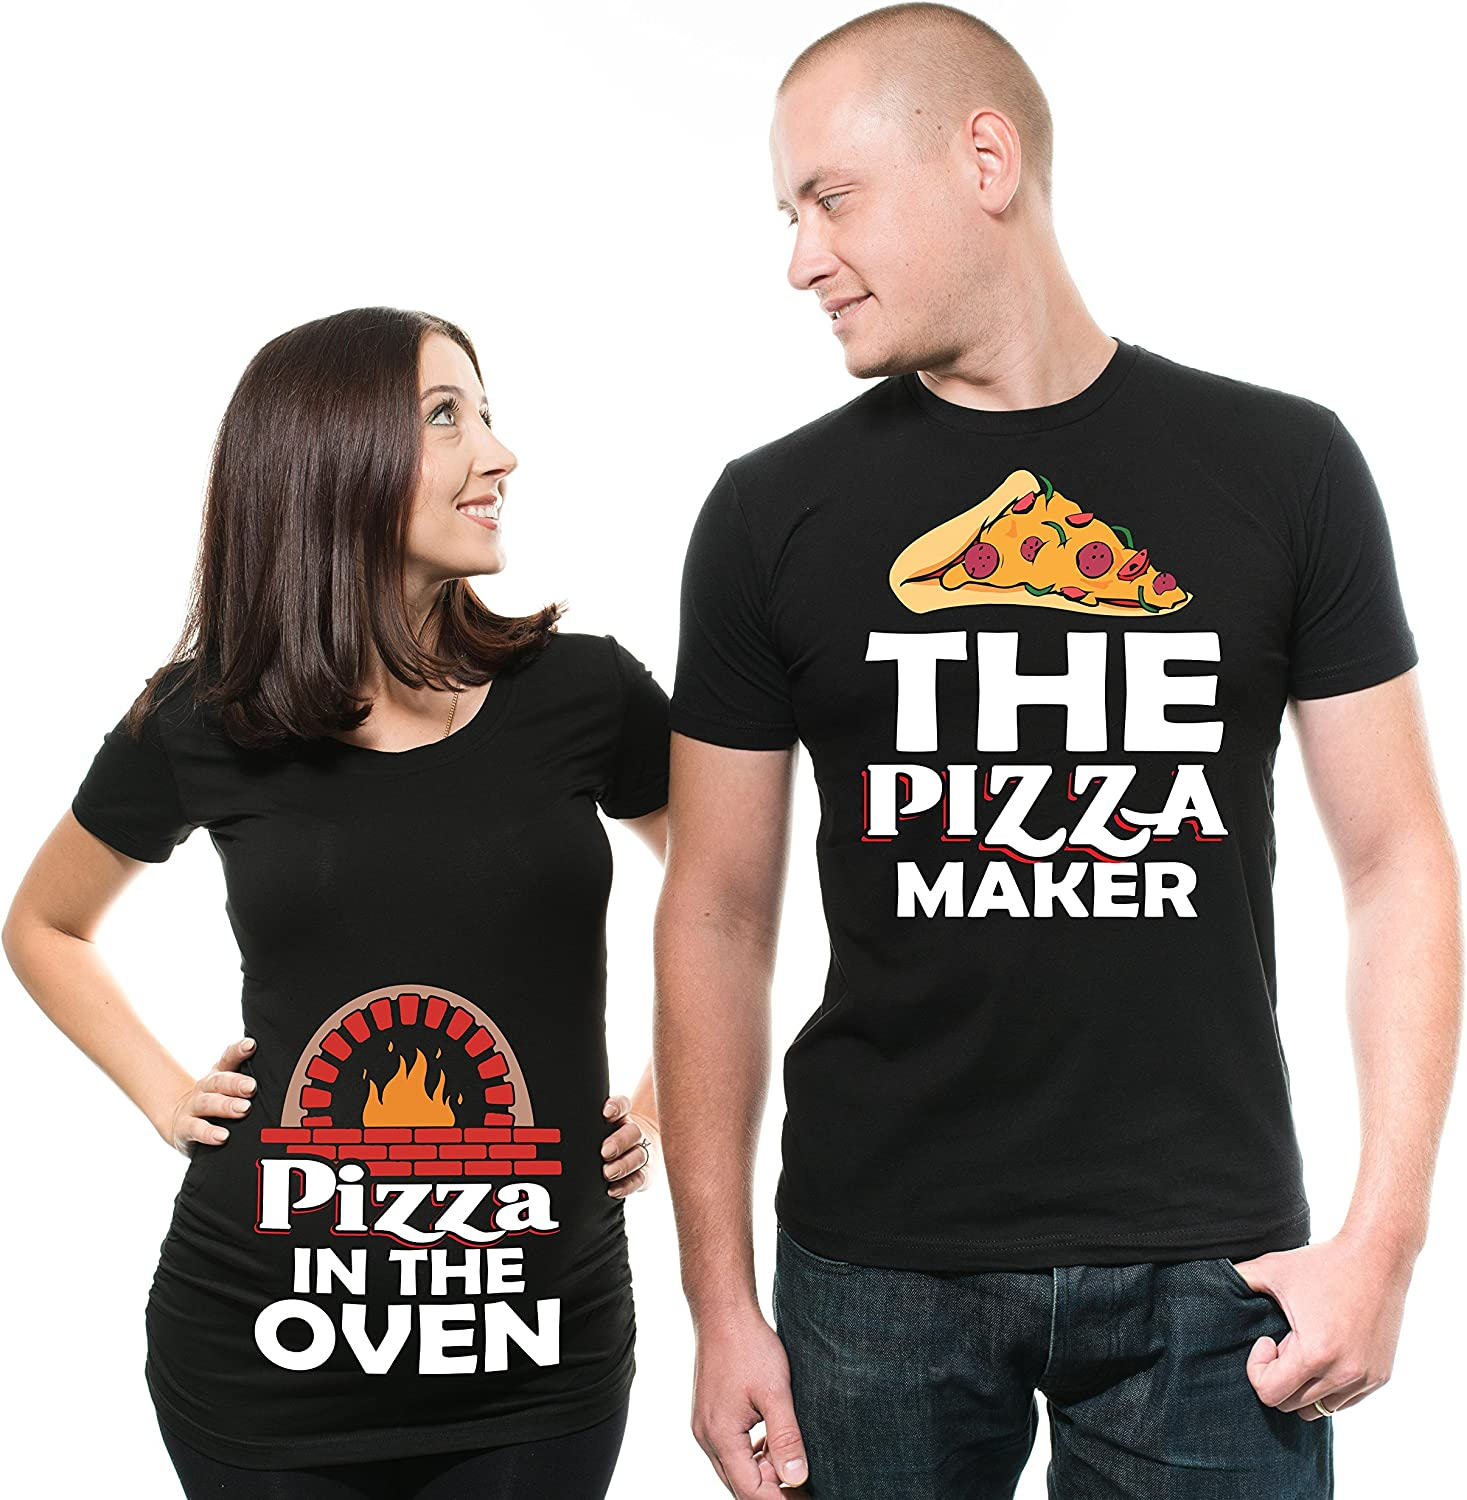 Pizza Maker Pizza in The Oven Funny Couple Matching Shirts Maternity Tee Shirt Pregnancy